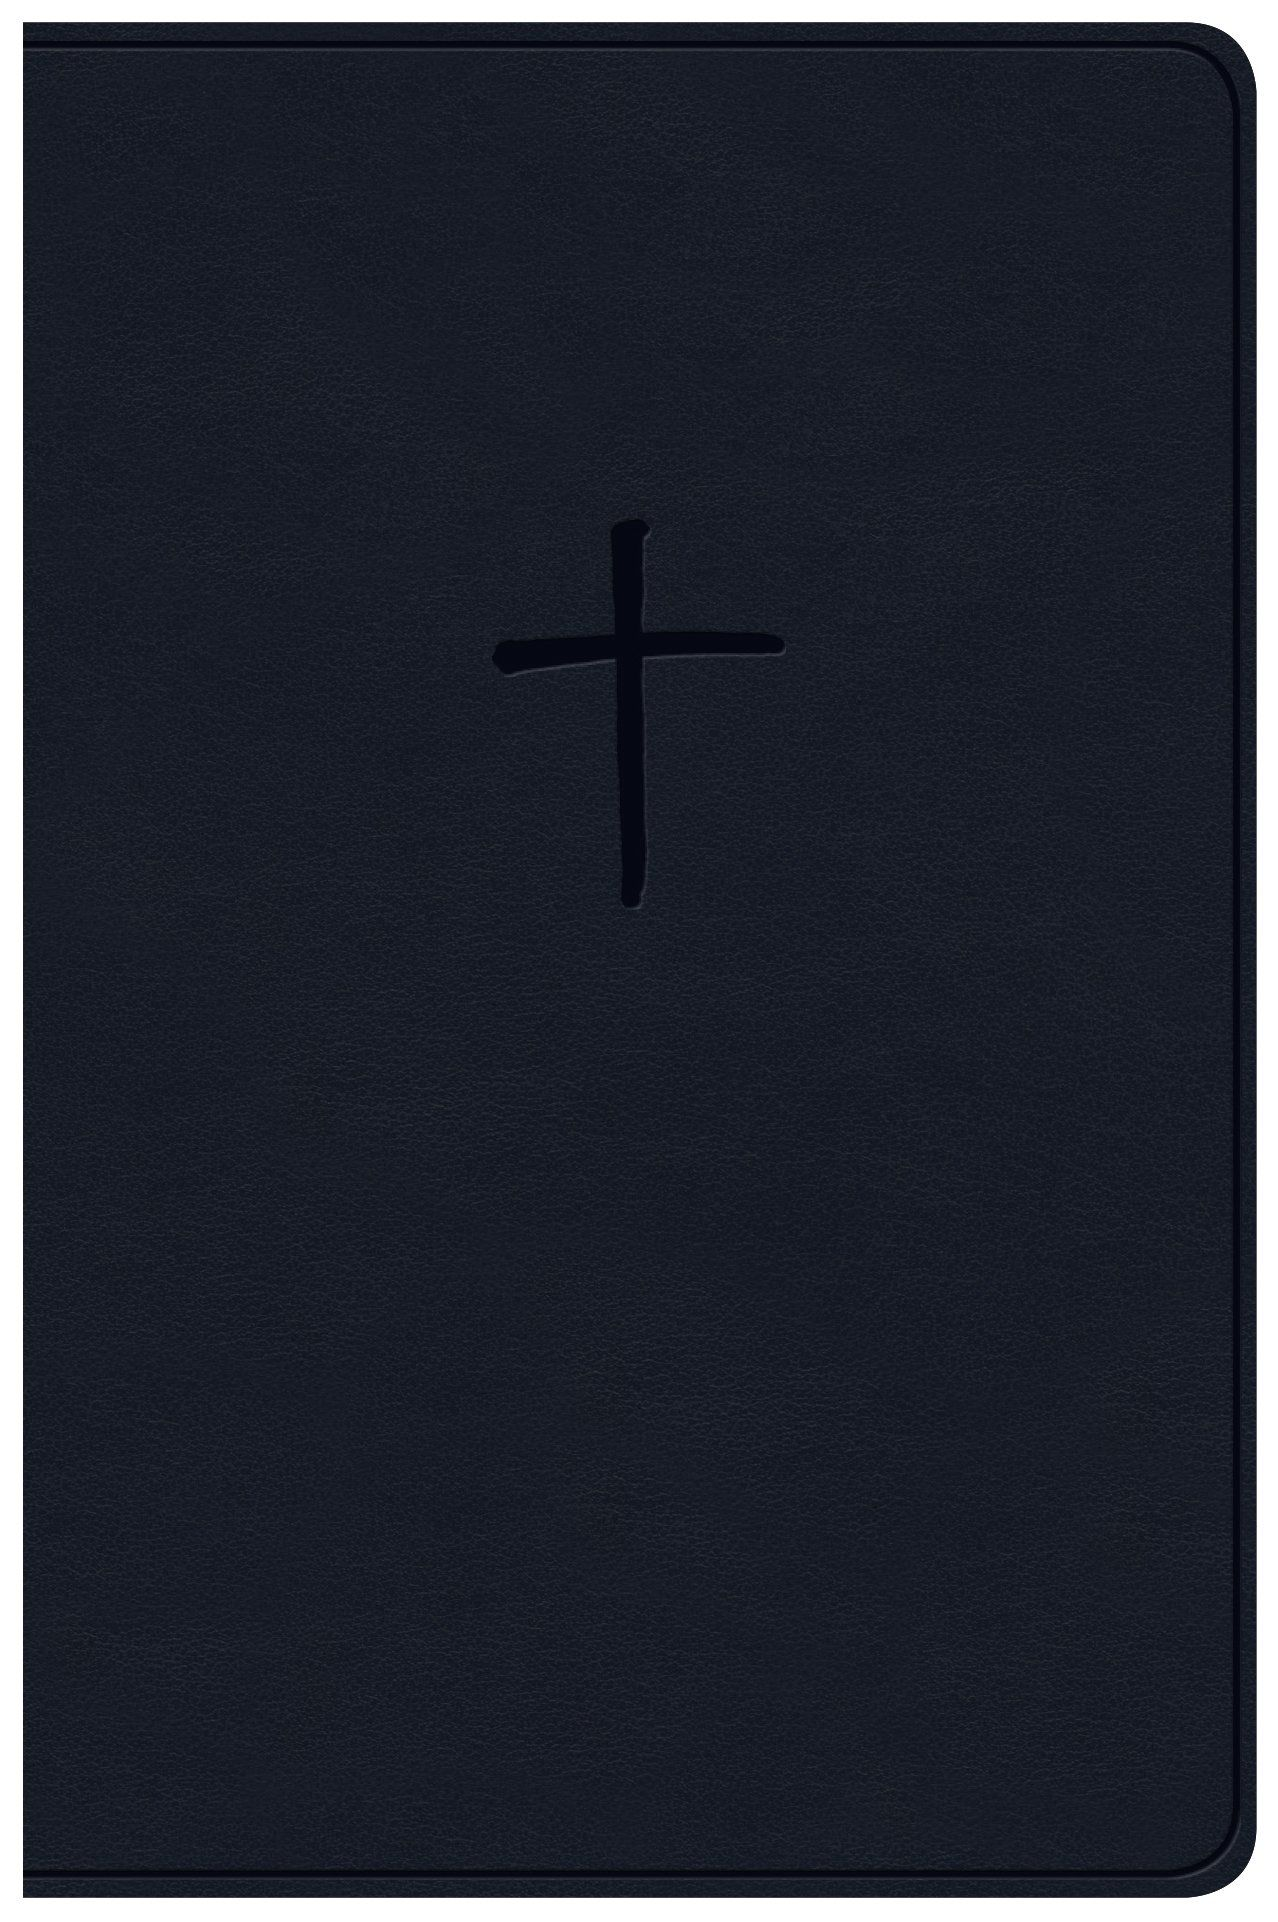 NKJV Compact Bible, Value Edition Navy Leathertouch